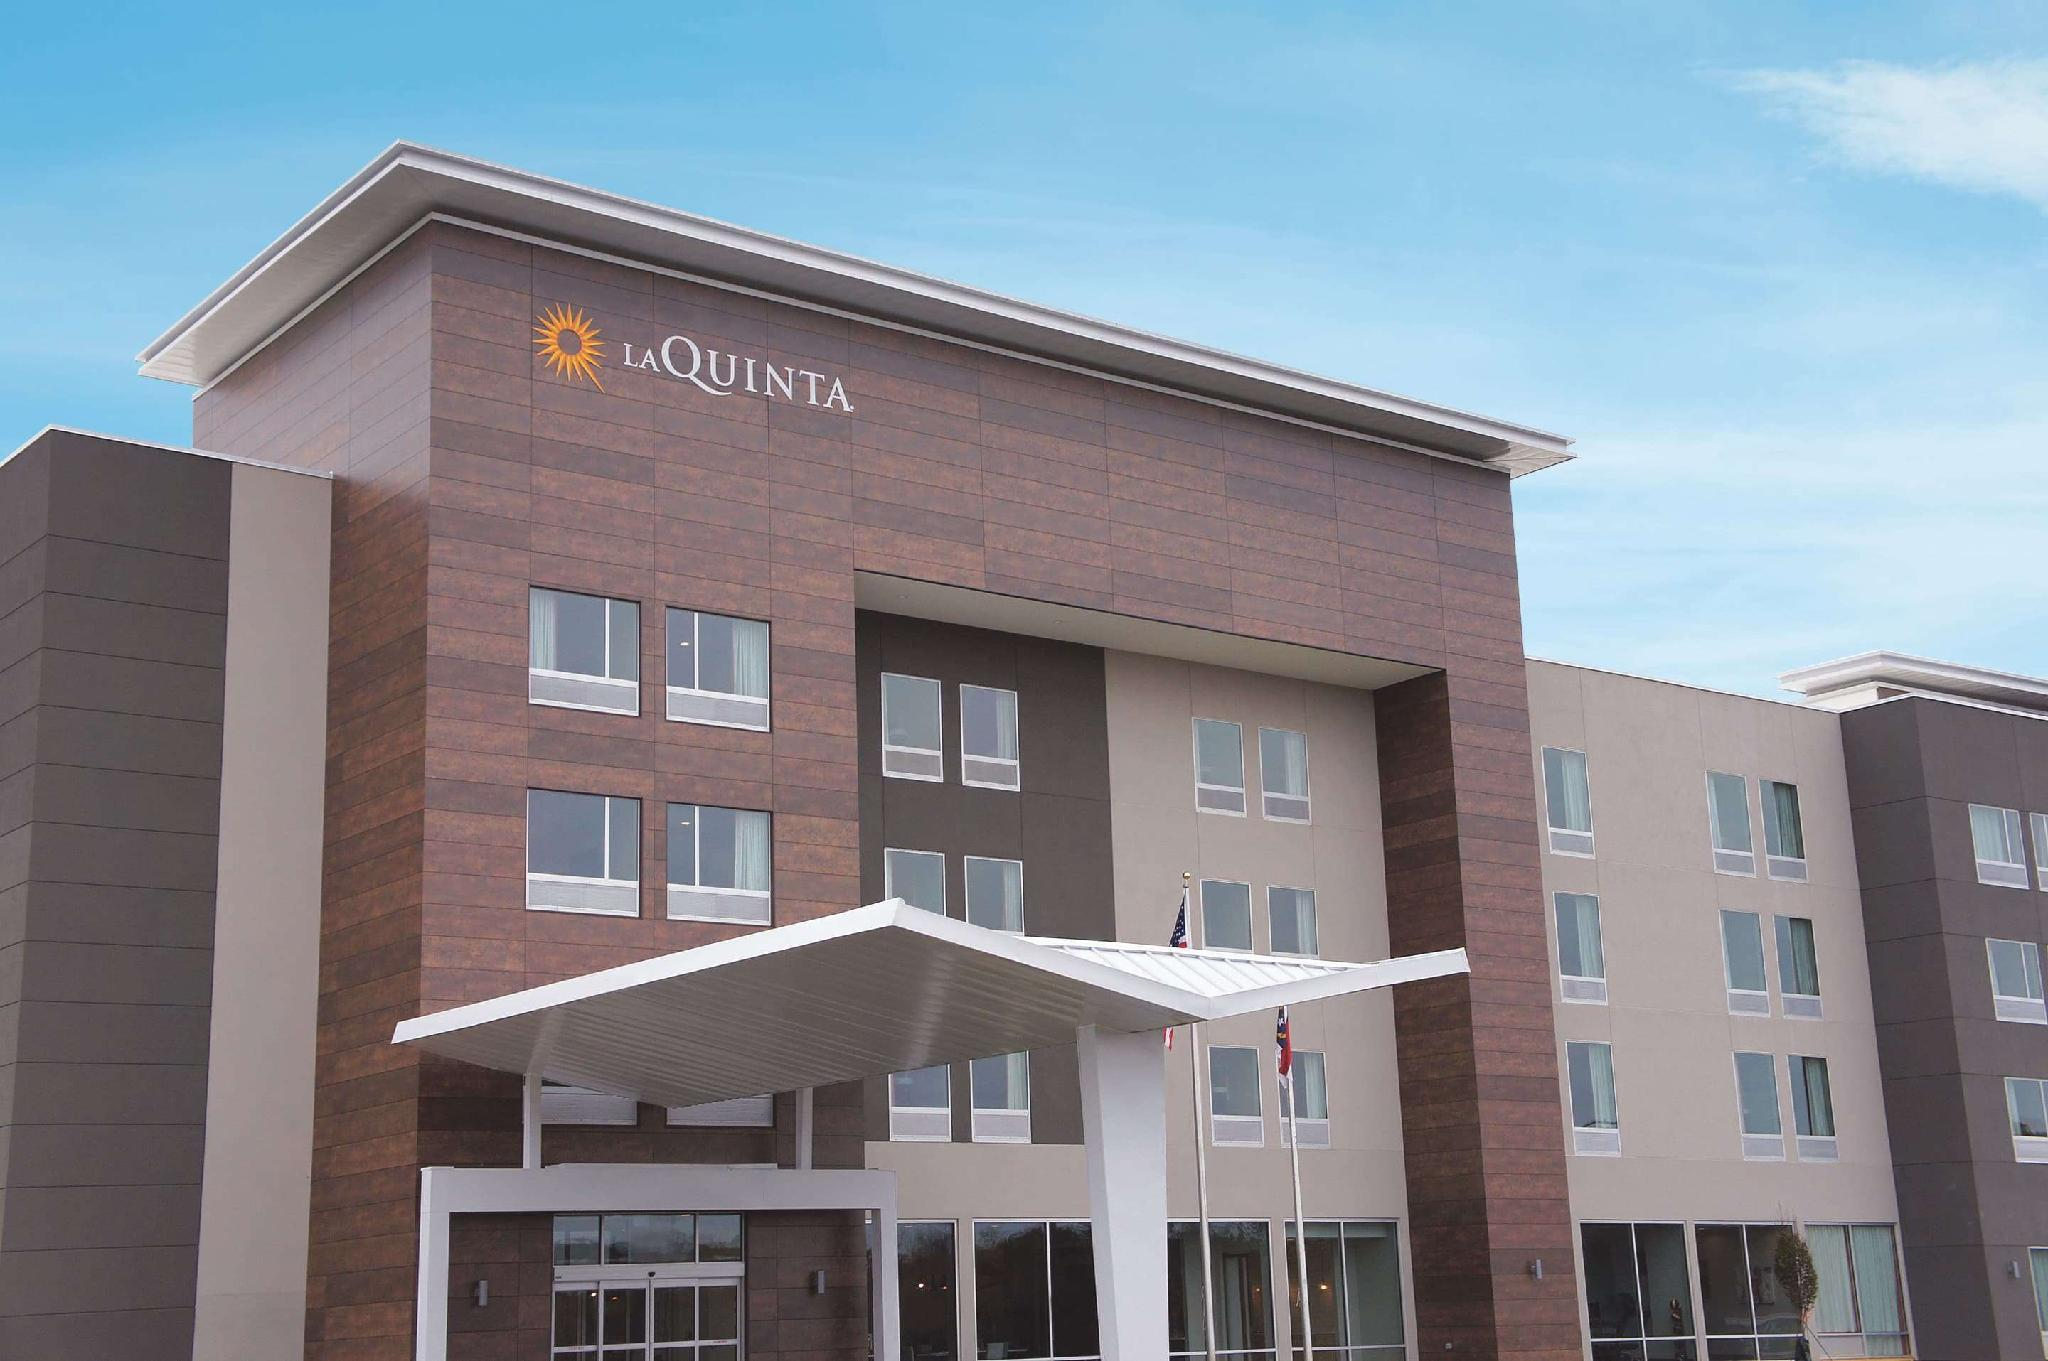 La Quinta Inn & Suites By Wyndham Greensboro Arpt High Point